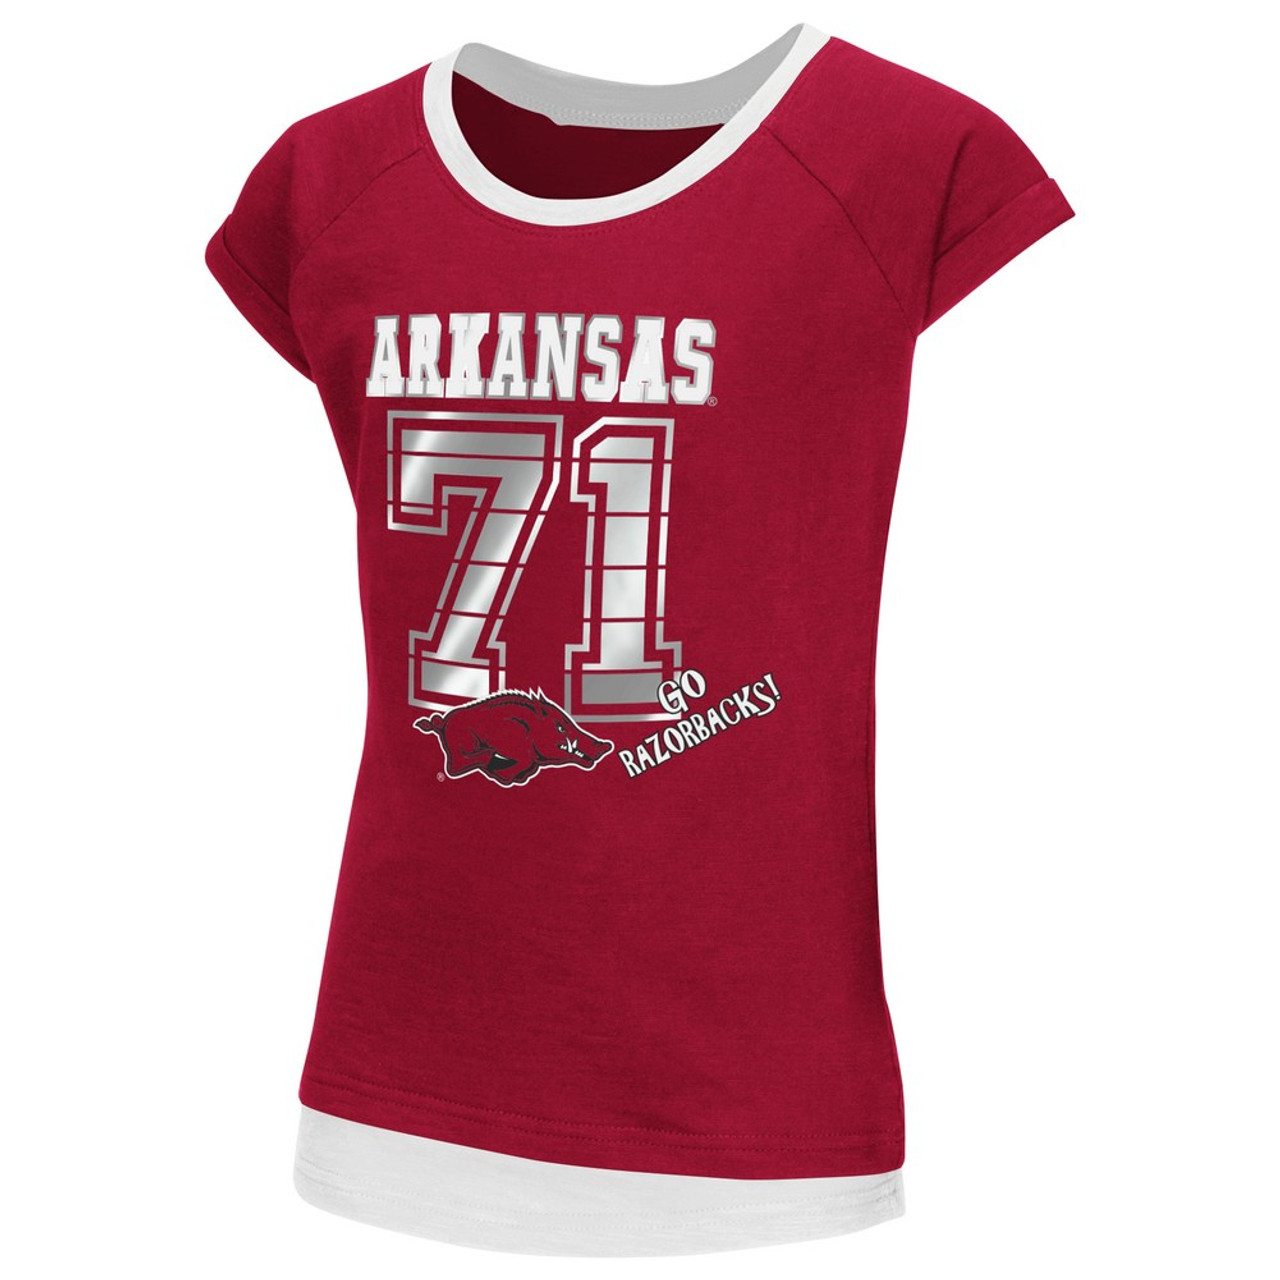 huge selection of 95cac a8a60 Arkansas Razorback Youth Girls Roll Sleeve Tee